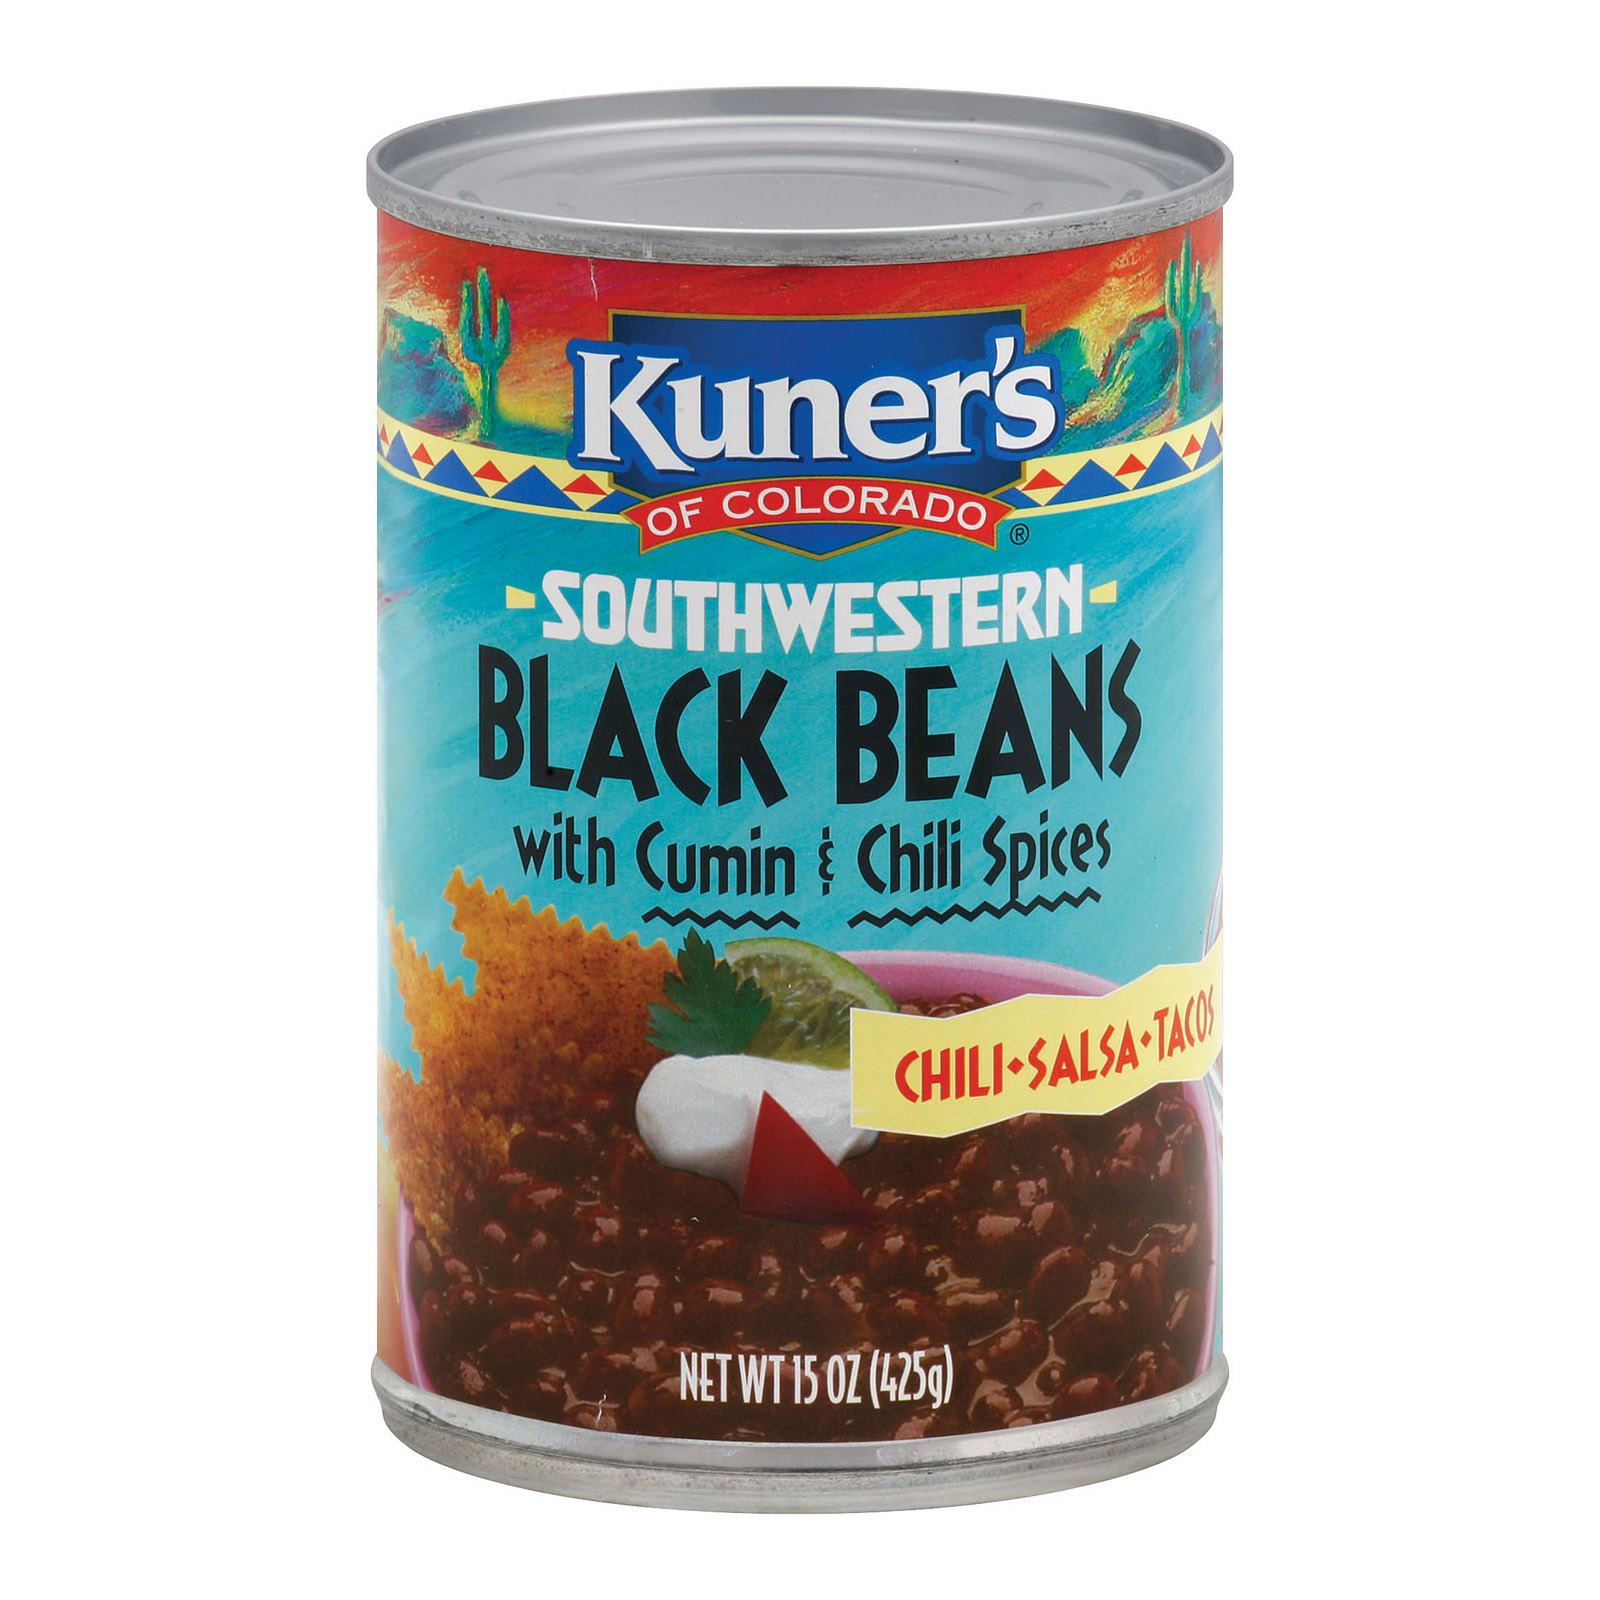 Kuner Black Beans - Cumin and Chili Spices - 15 oz.